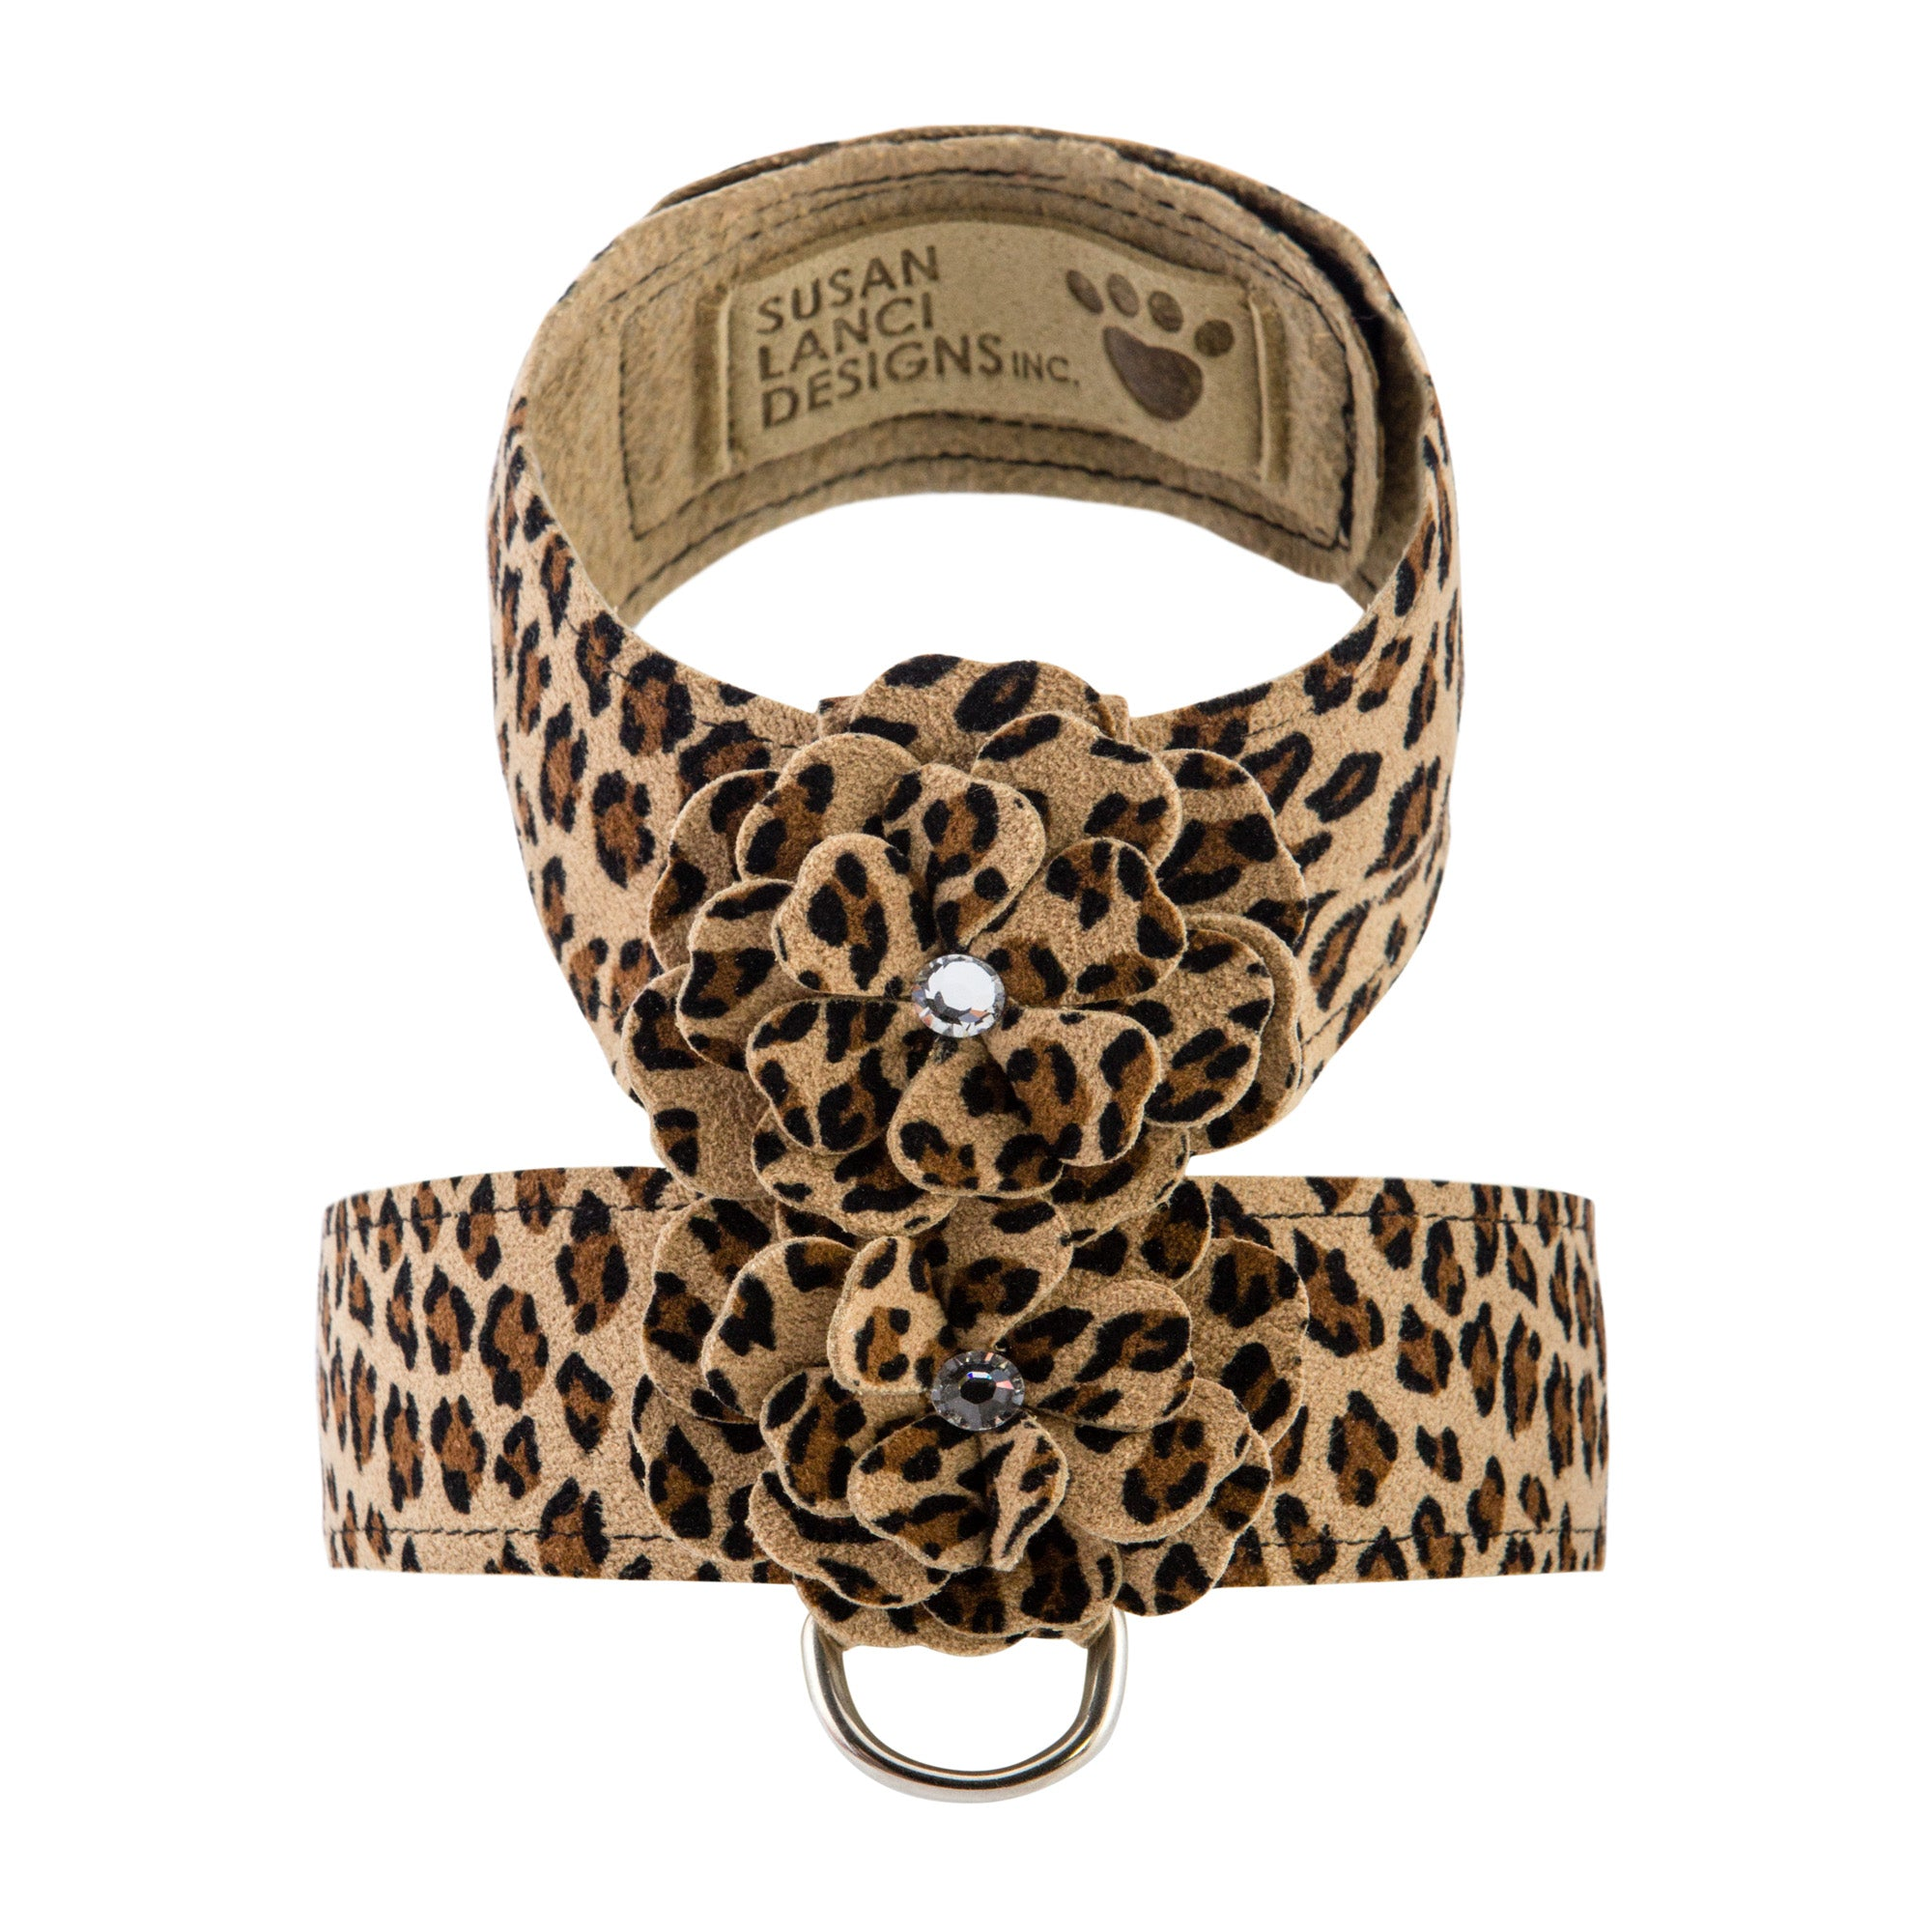 Cheetah Tinkies Garden Tinkie Harness